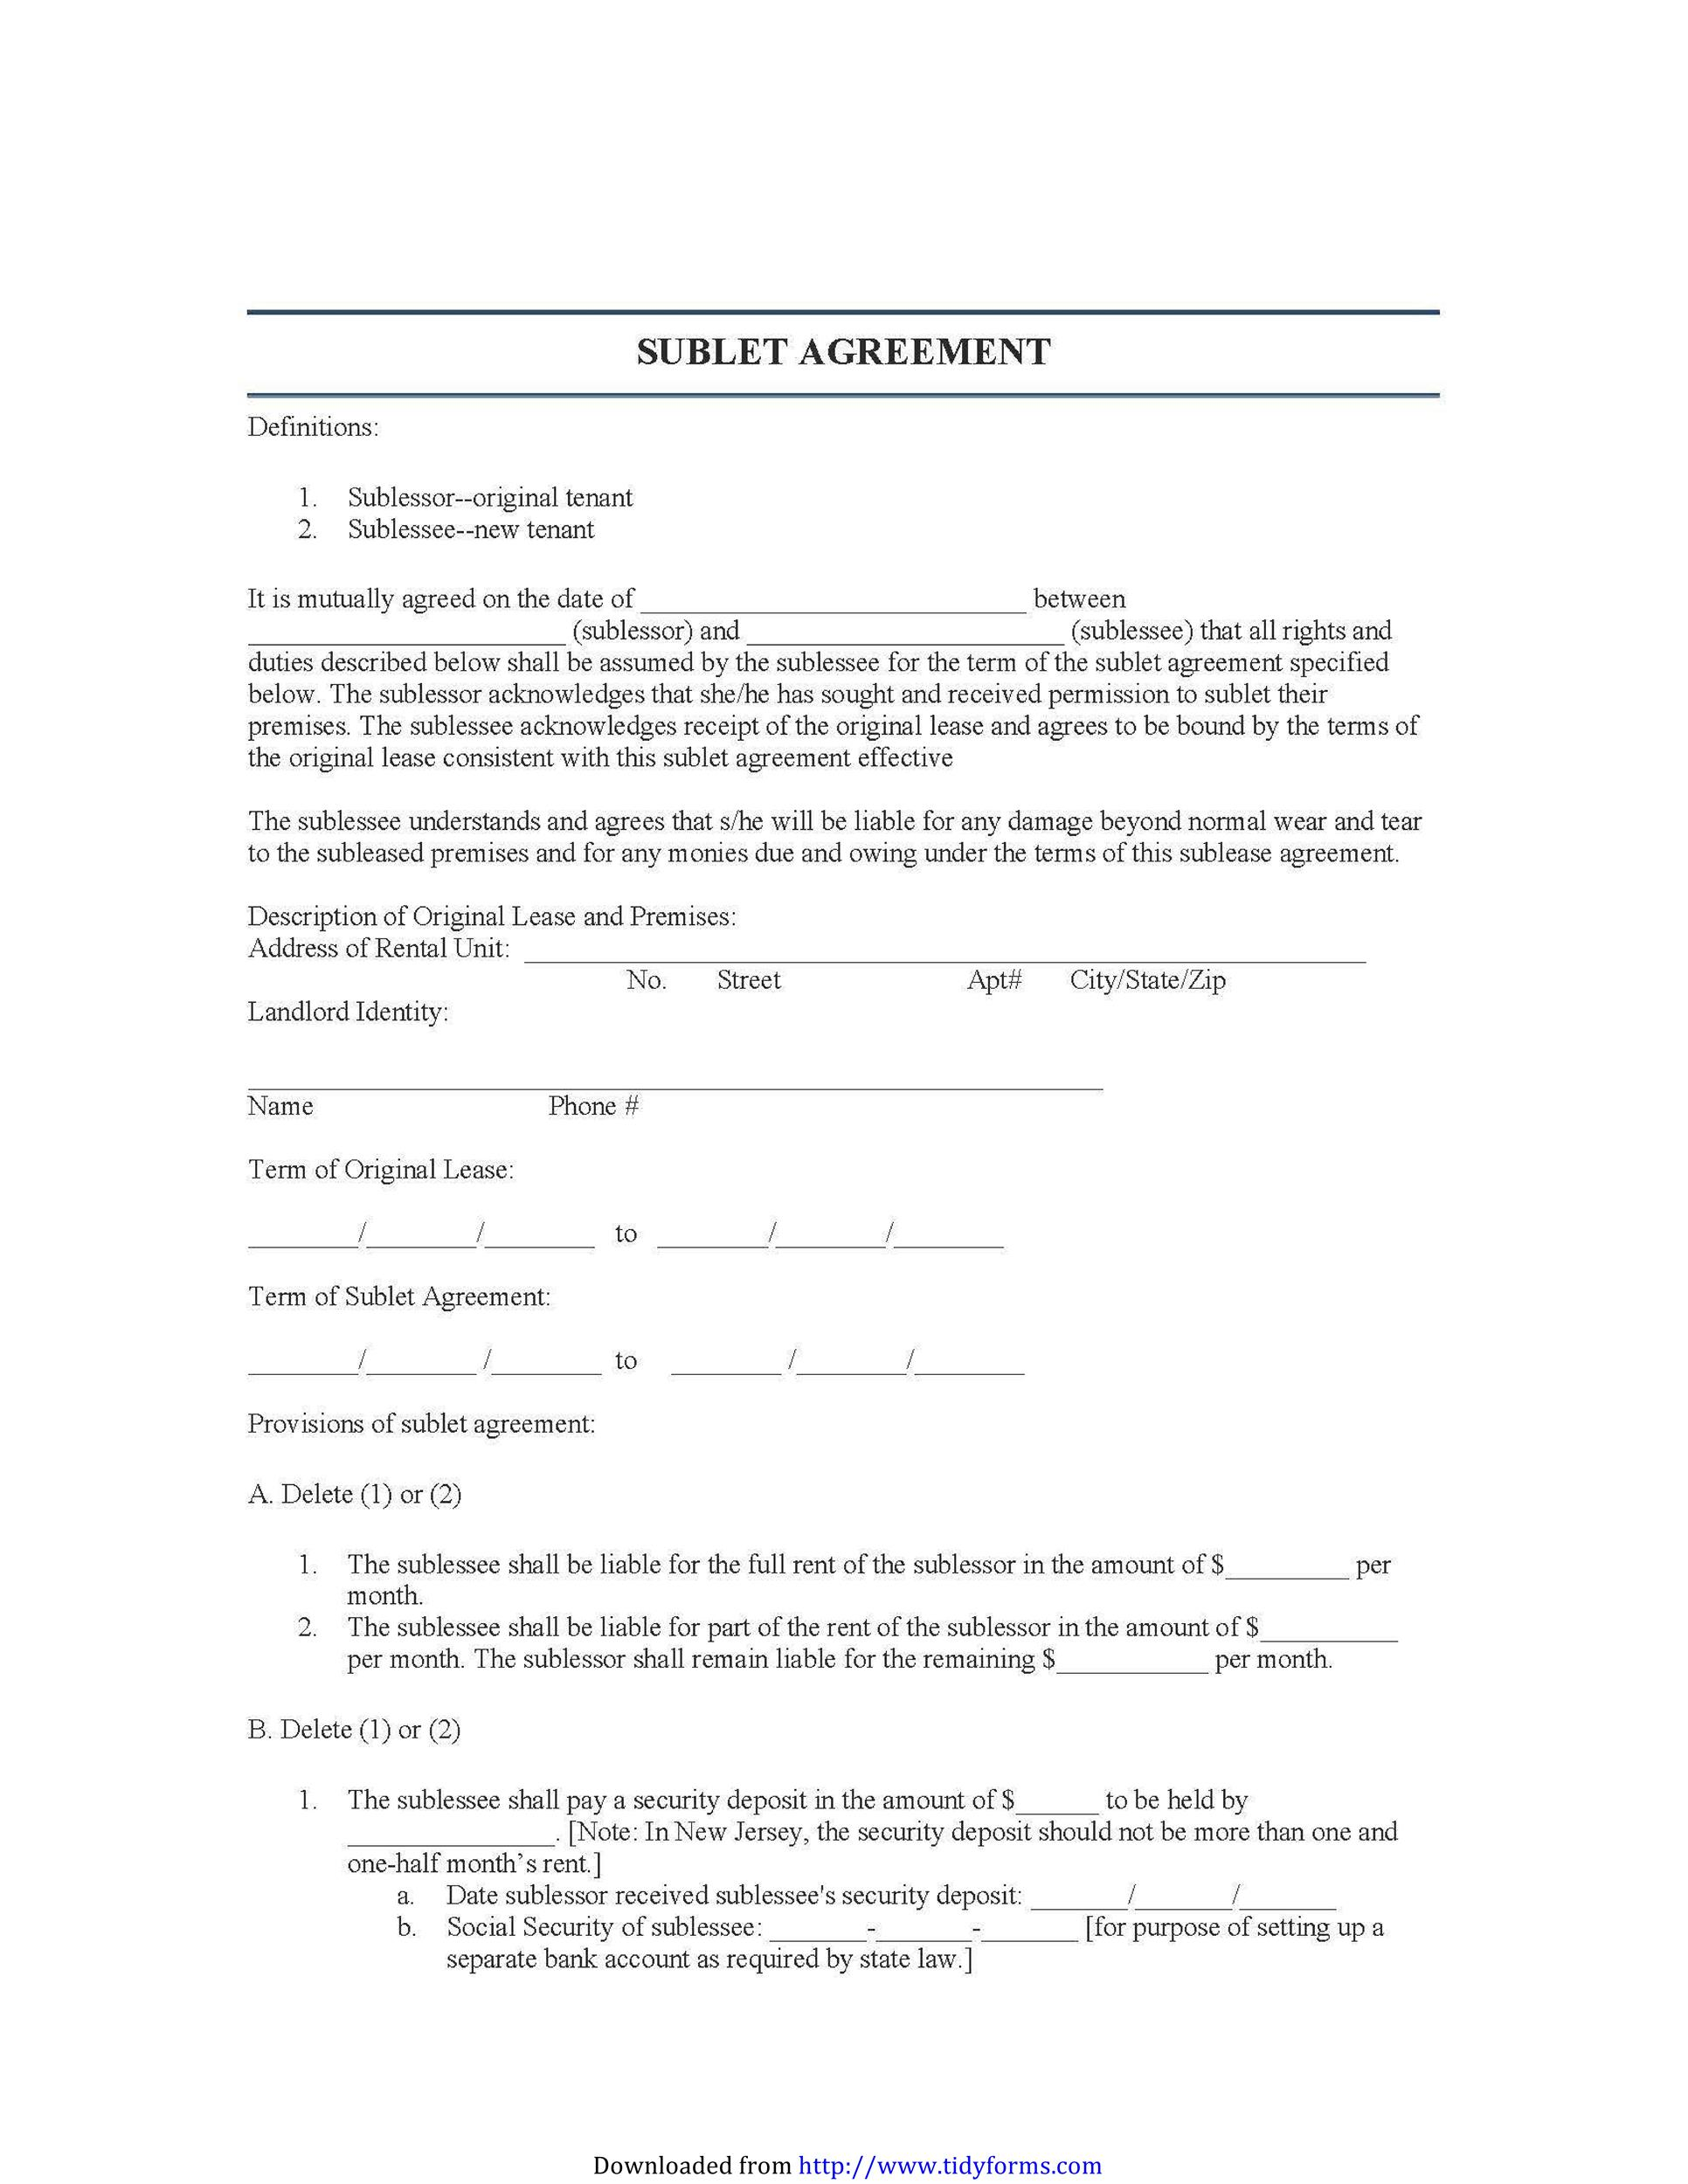 Free Sublease Agreement Template 26 Printable